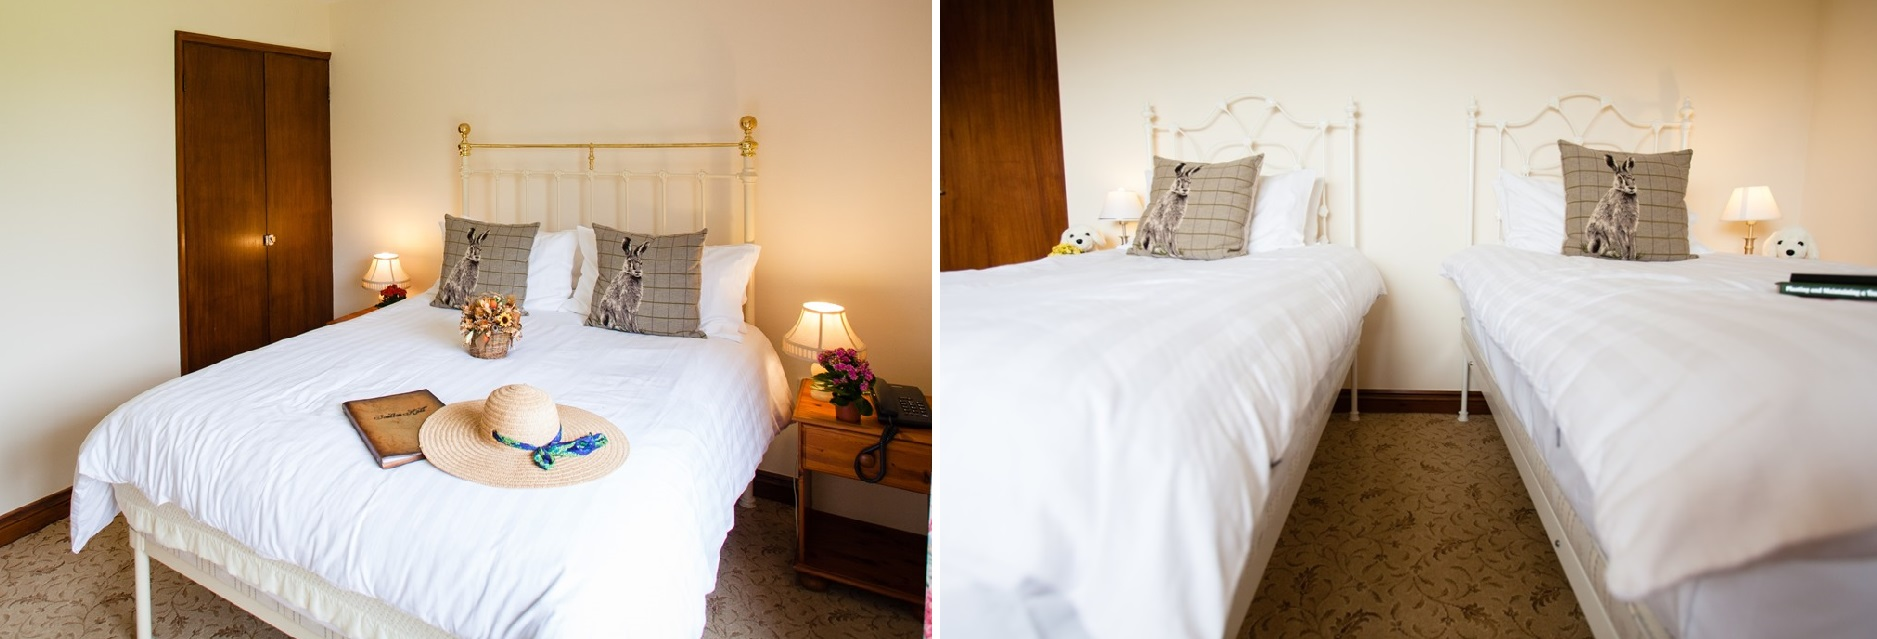 The bedrooms in the Garden Rooms - Family Accommodation in the Cedar Lodge